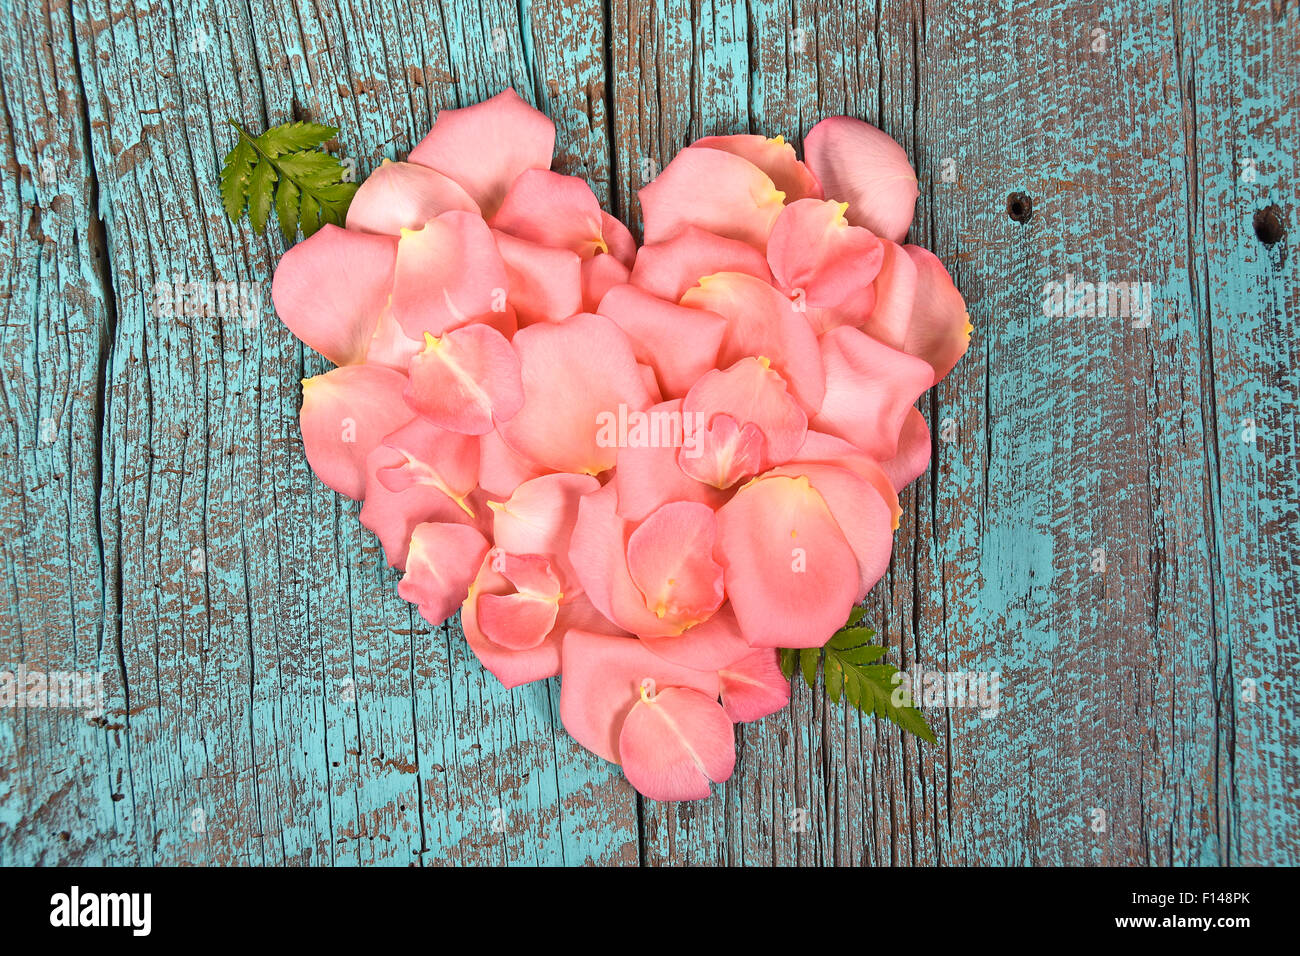 Pink Rose Petals With Fern Leaf In A Heart Shape On Turquoise Painted Rustic Barn Wood